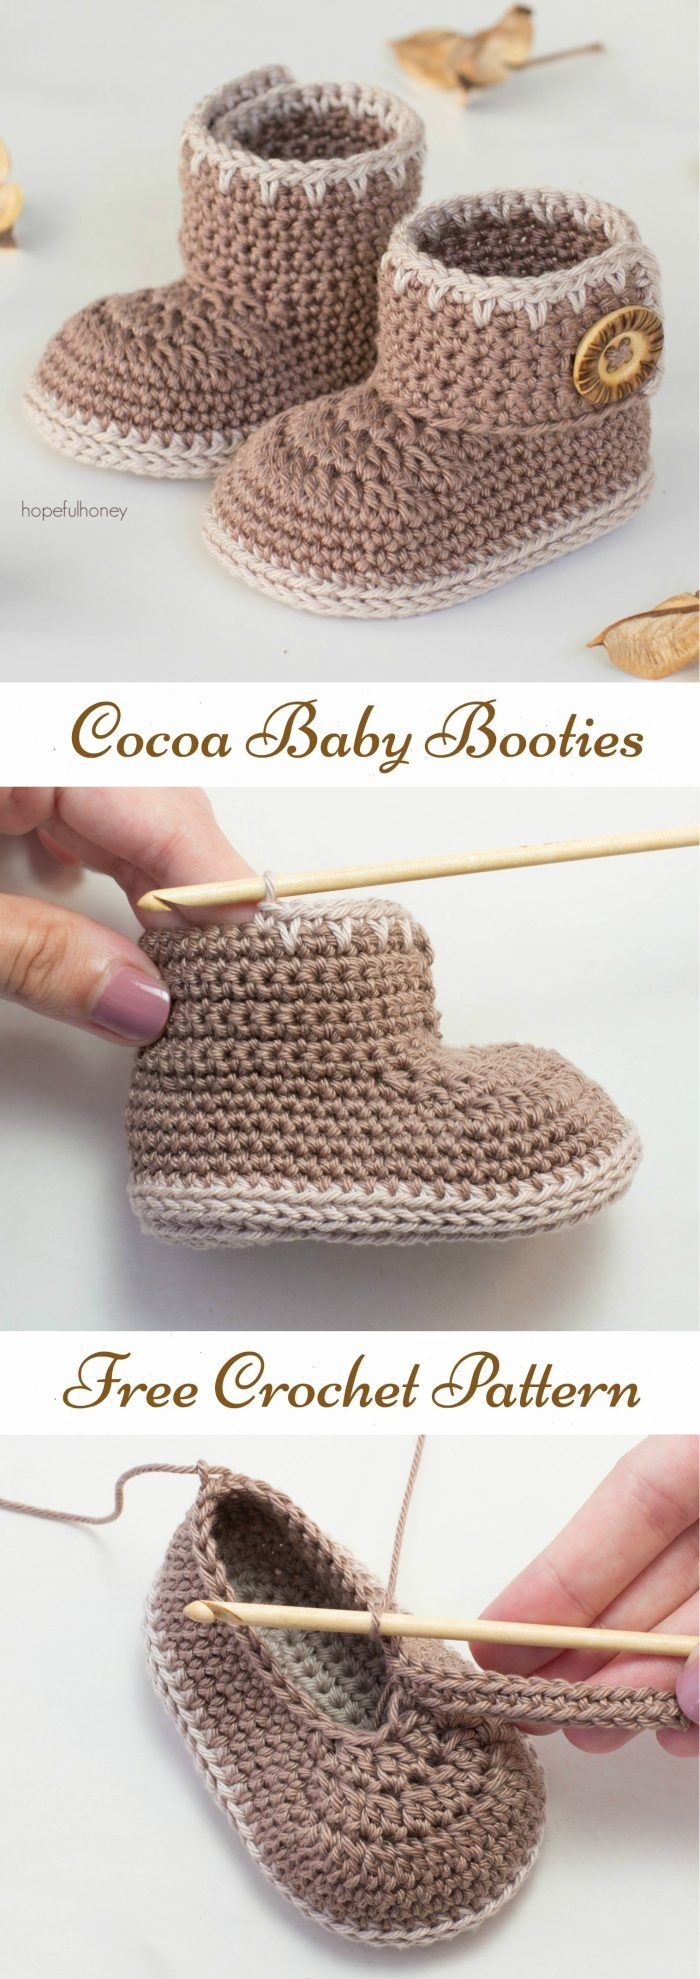 Cocoa Baby Booties Free Crochet Pattern